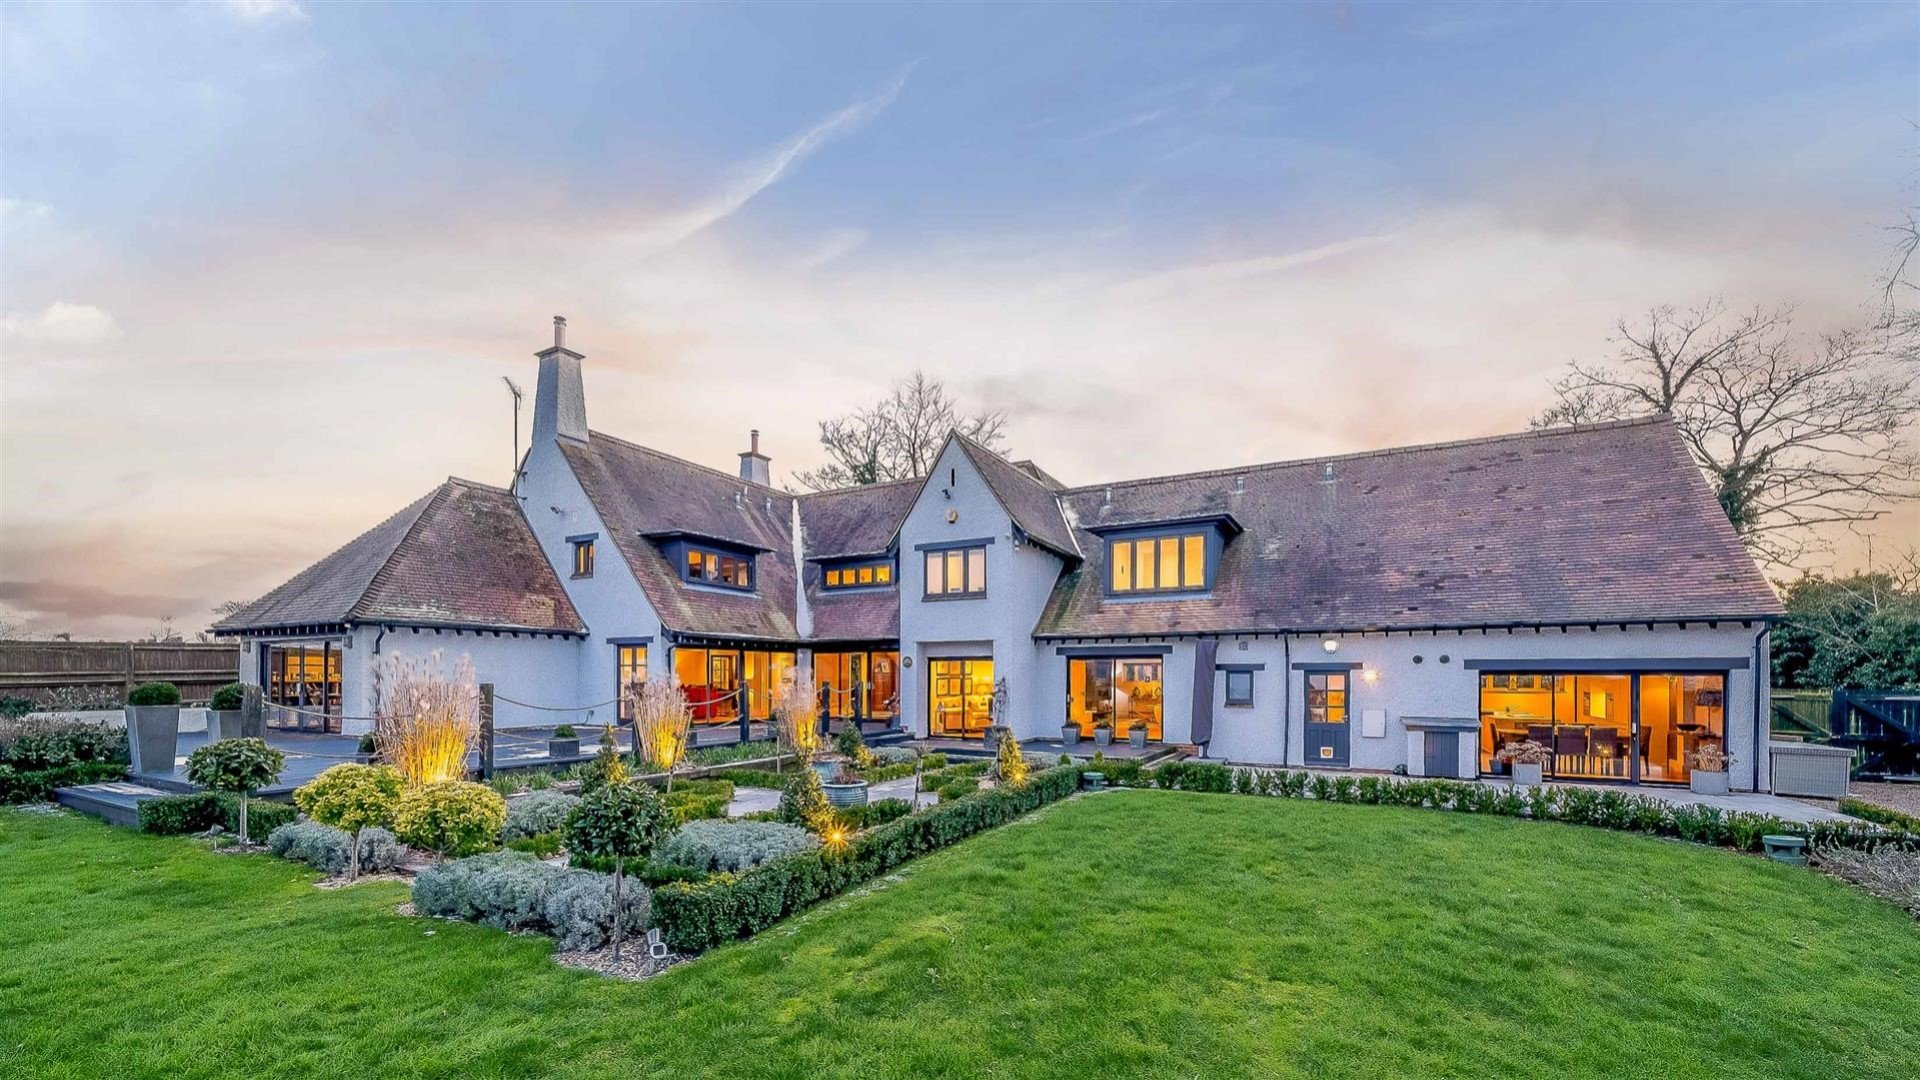 Rowstock Manor: A stunning Arts and Crafts style home